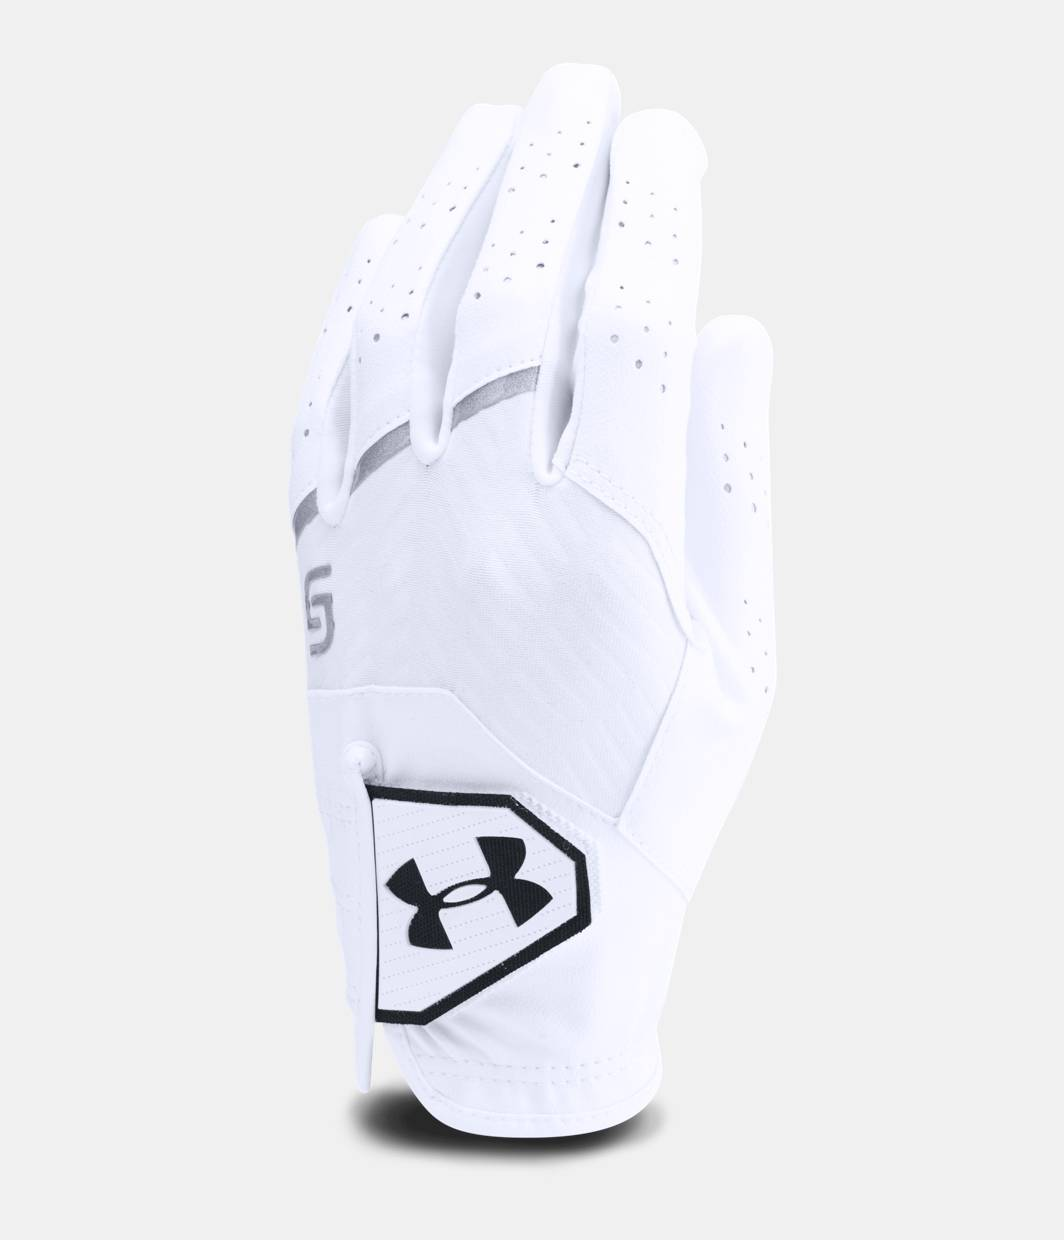 Boys  UA CoolSwitch Golf Glove — Spieth Jr. Edition 3 Colors Available   13.99 f8846cd6c